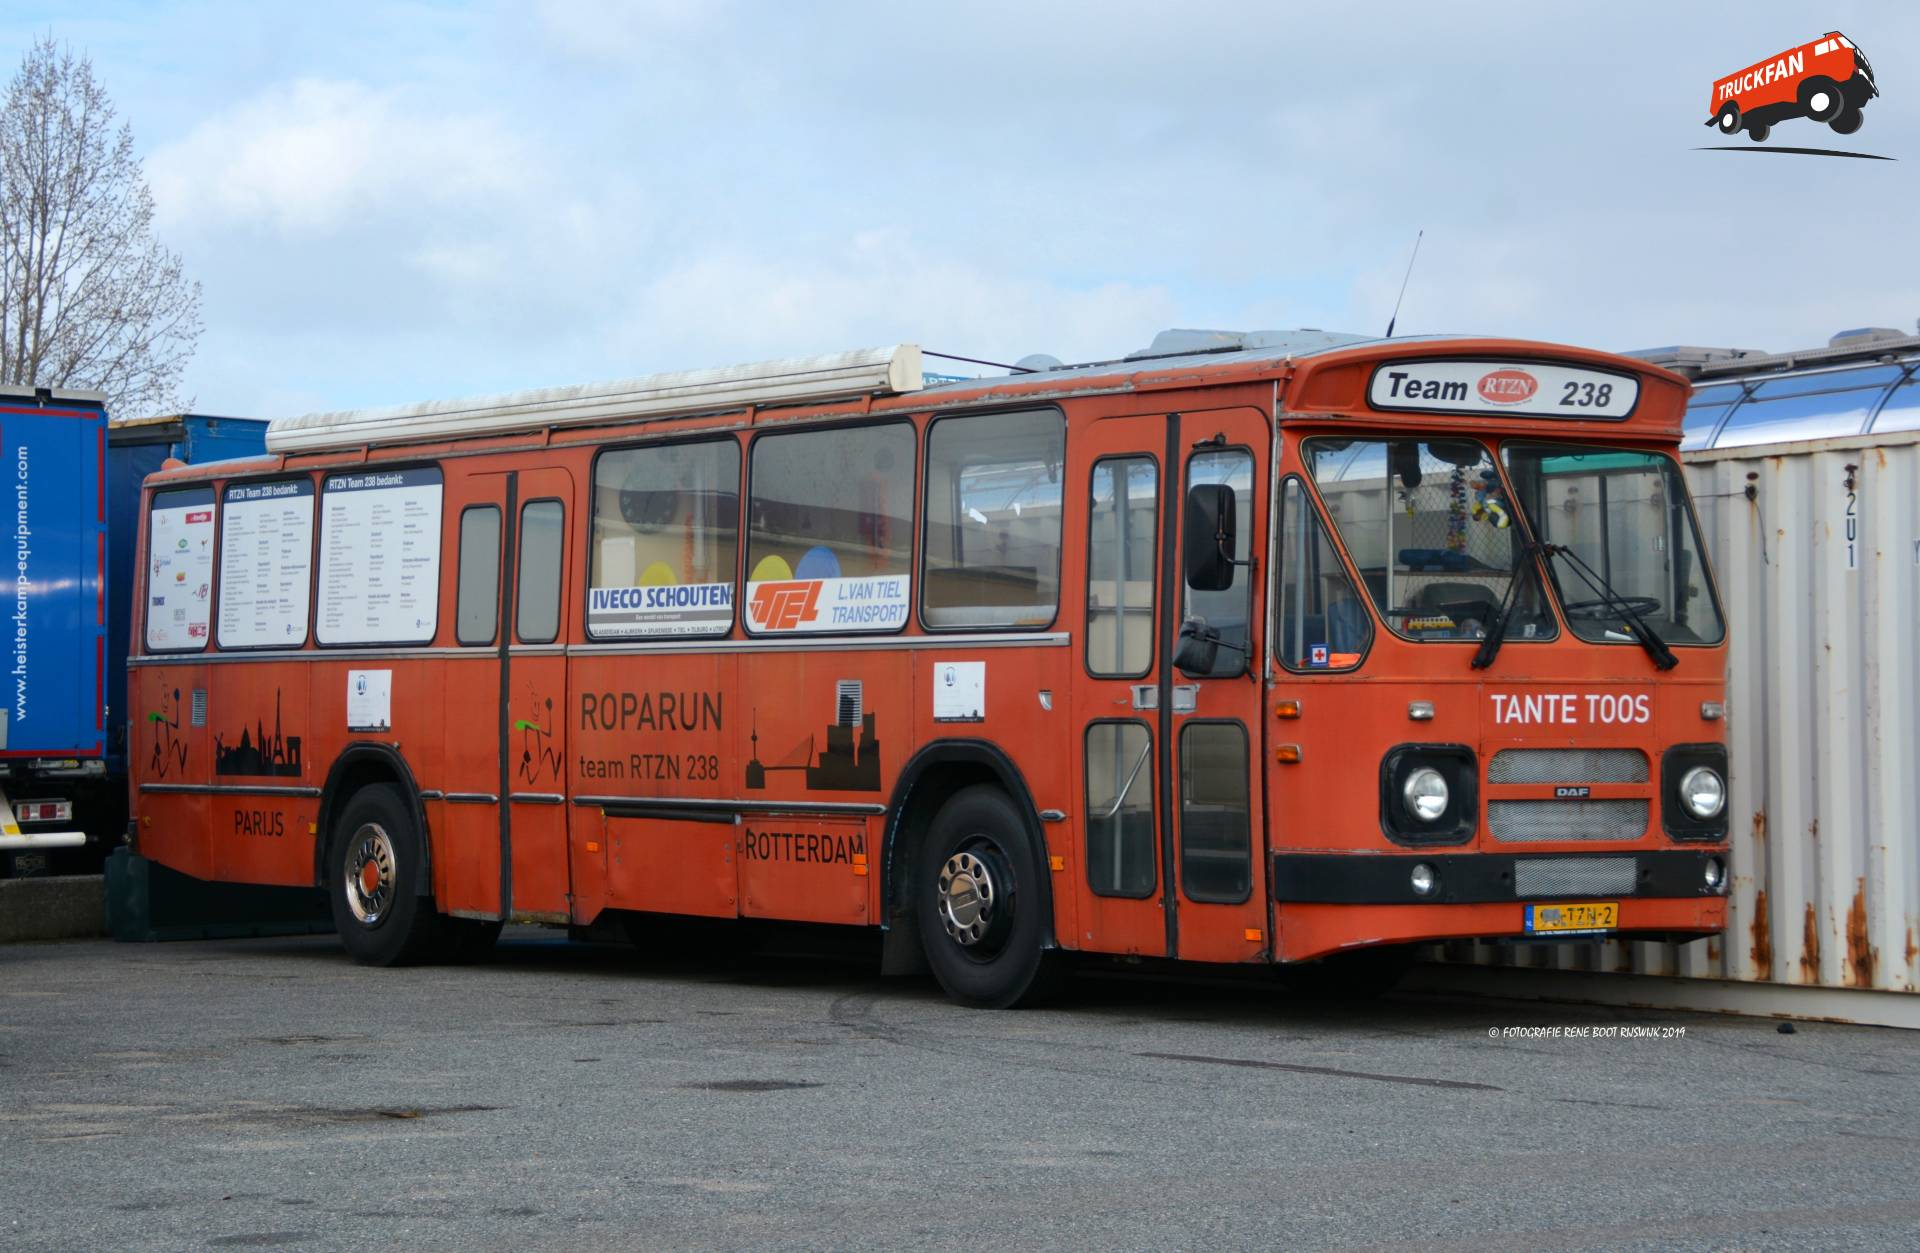 DAF buschassis